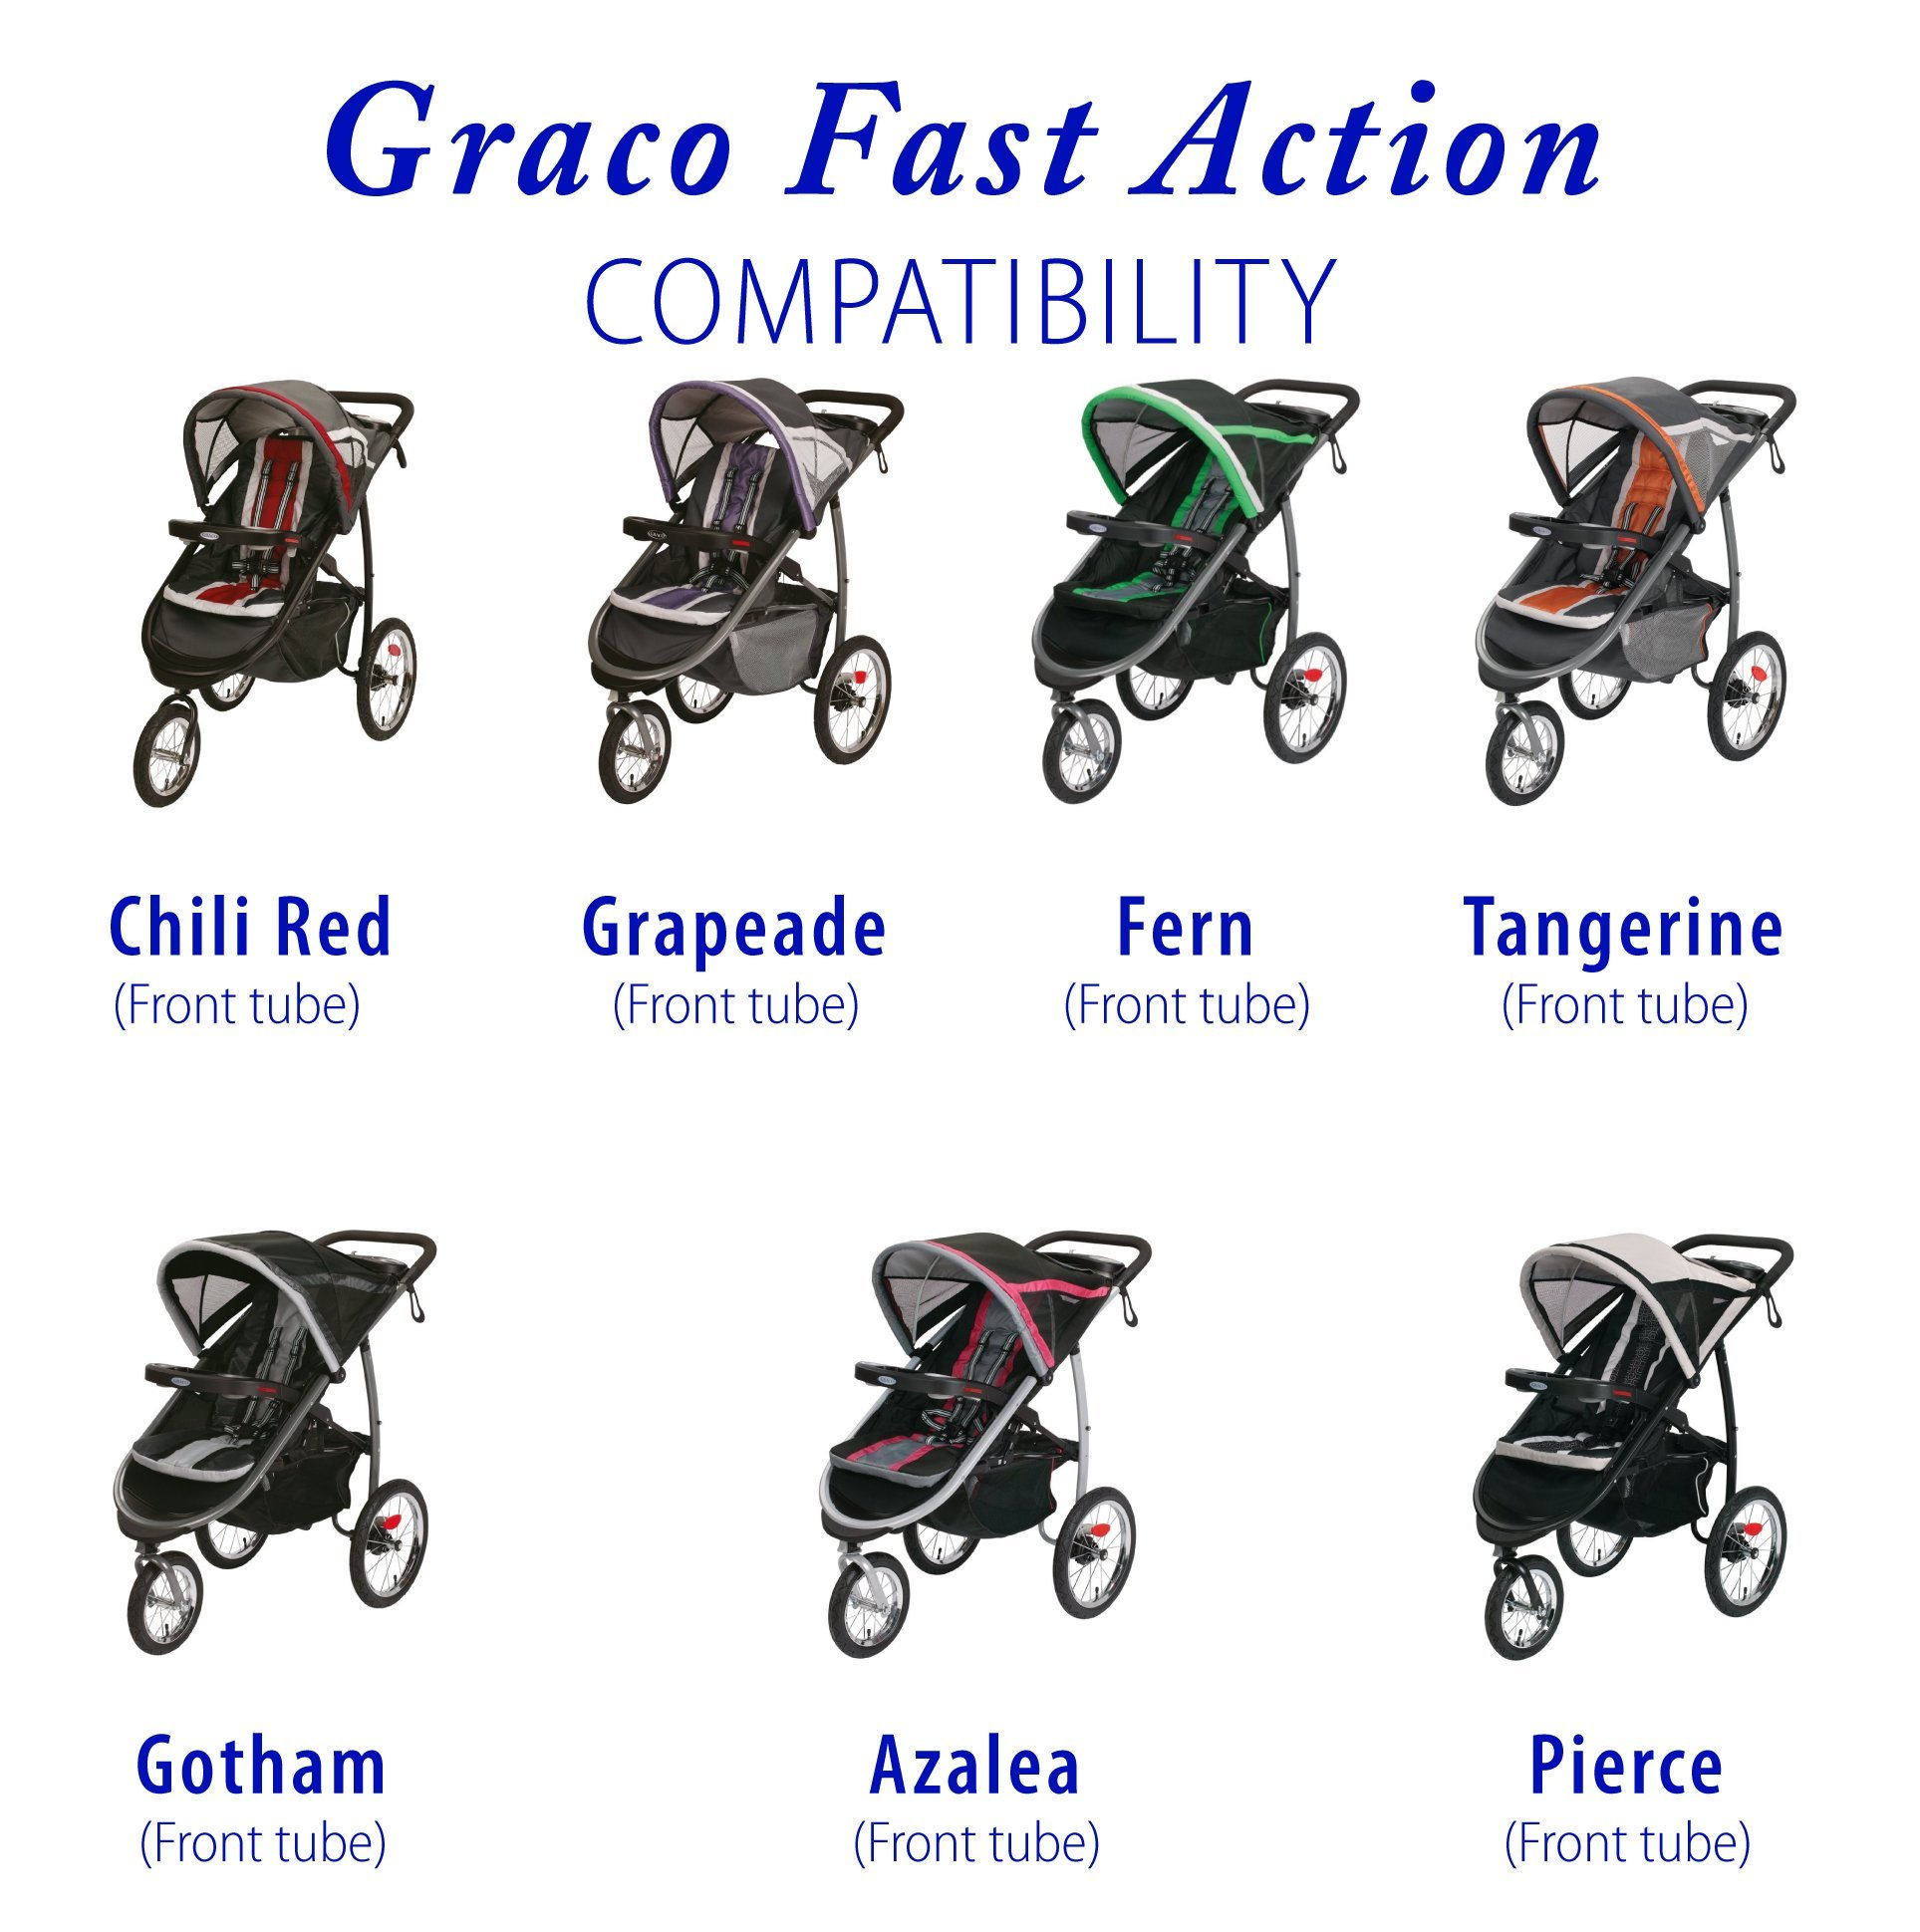 front tire & tube for Graco FastAction Jogger by Lineament (Image #2)